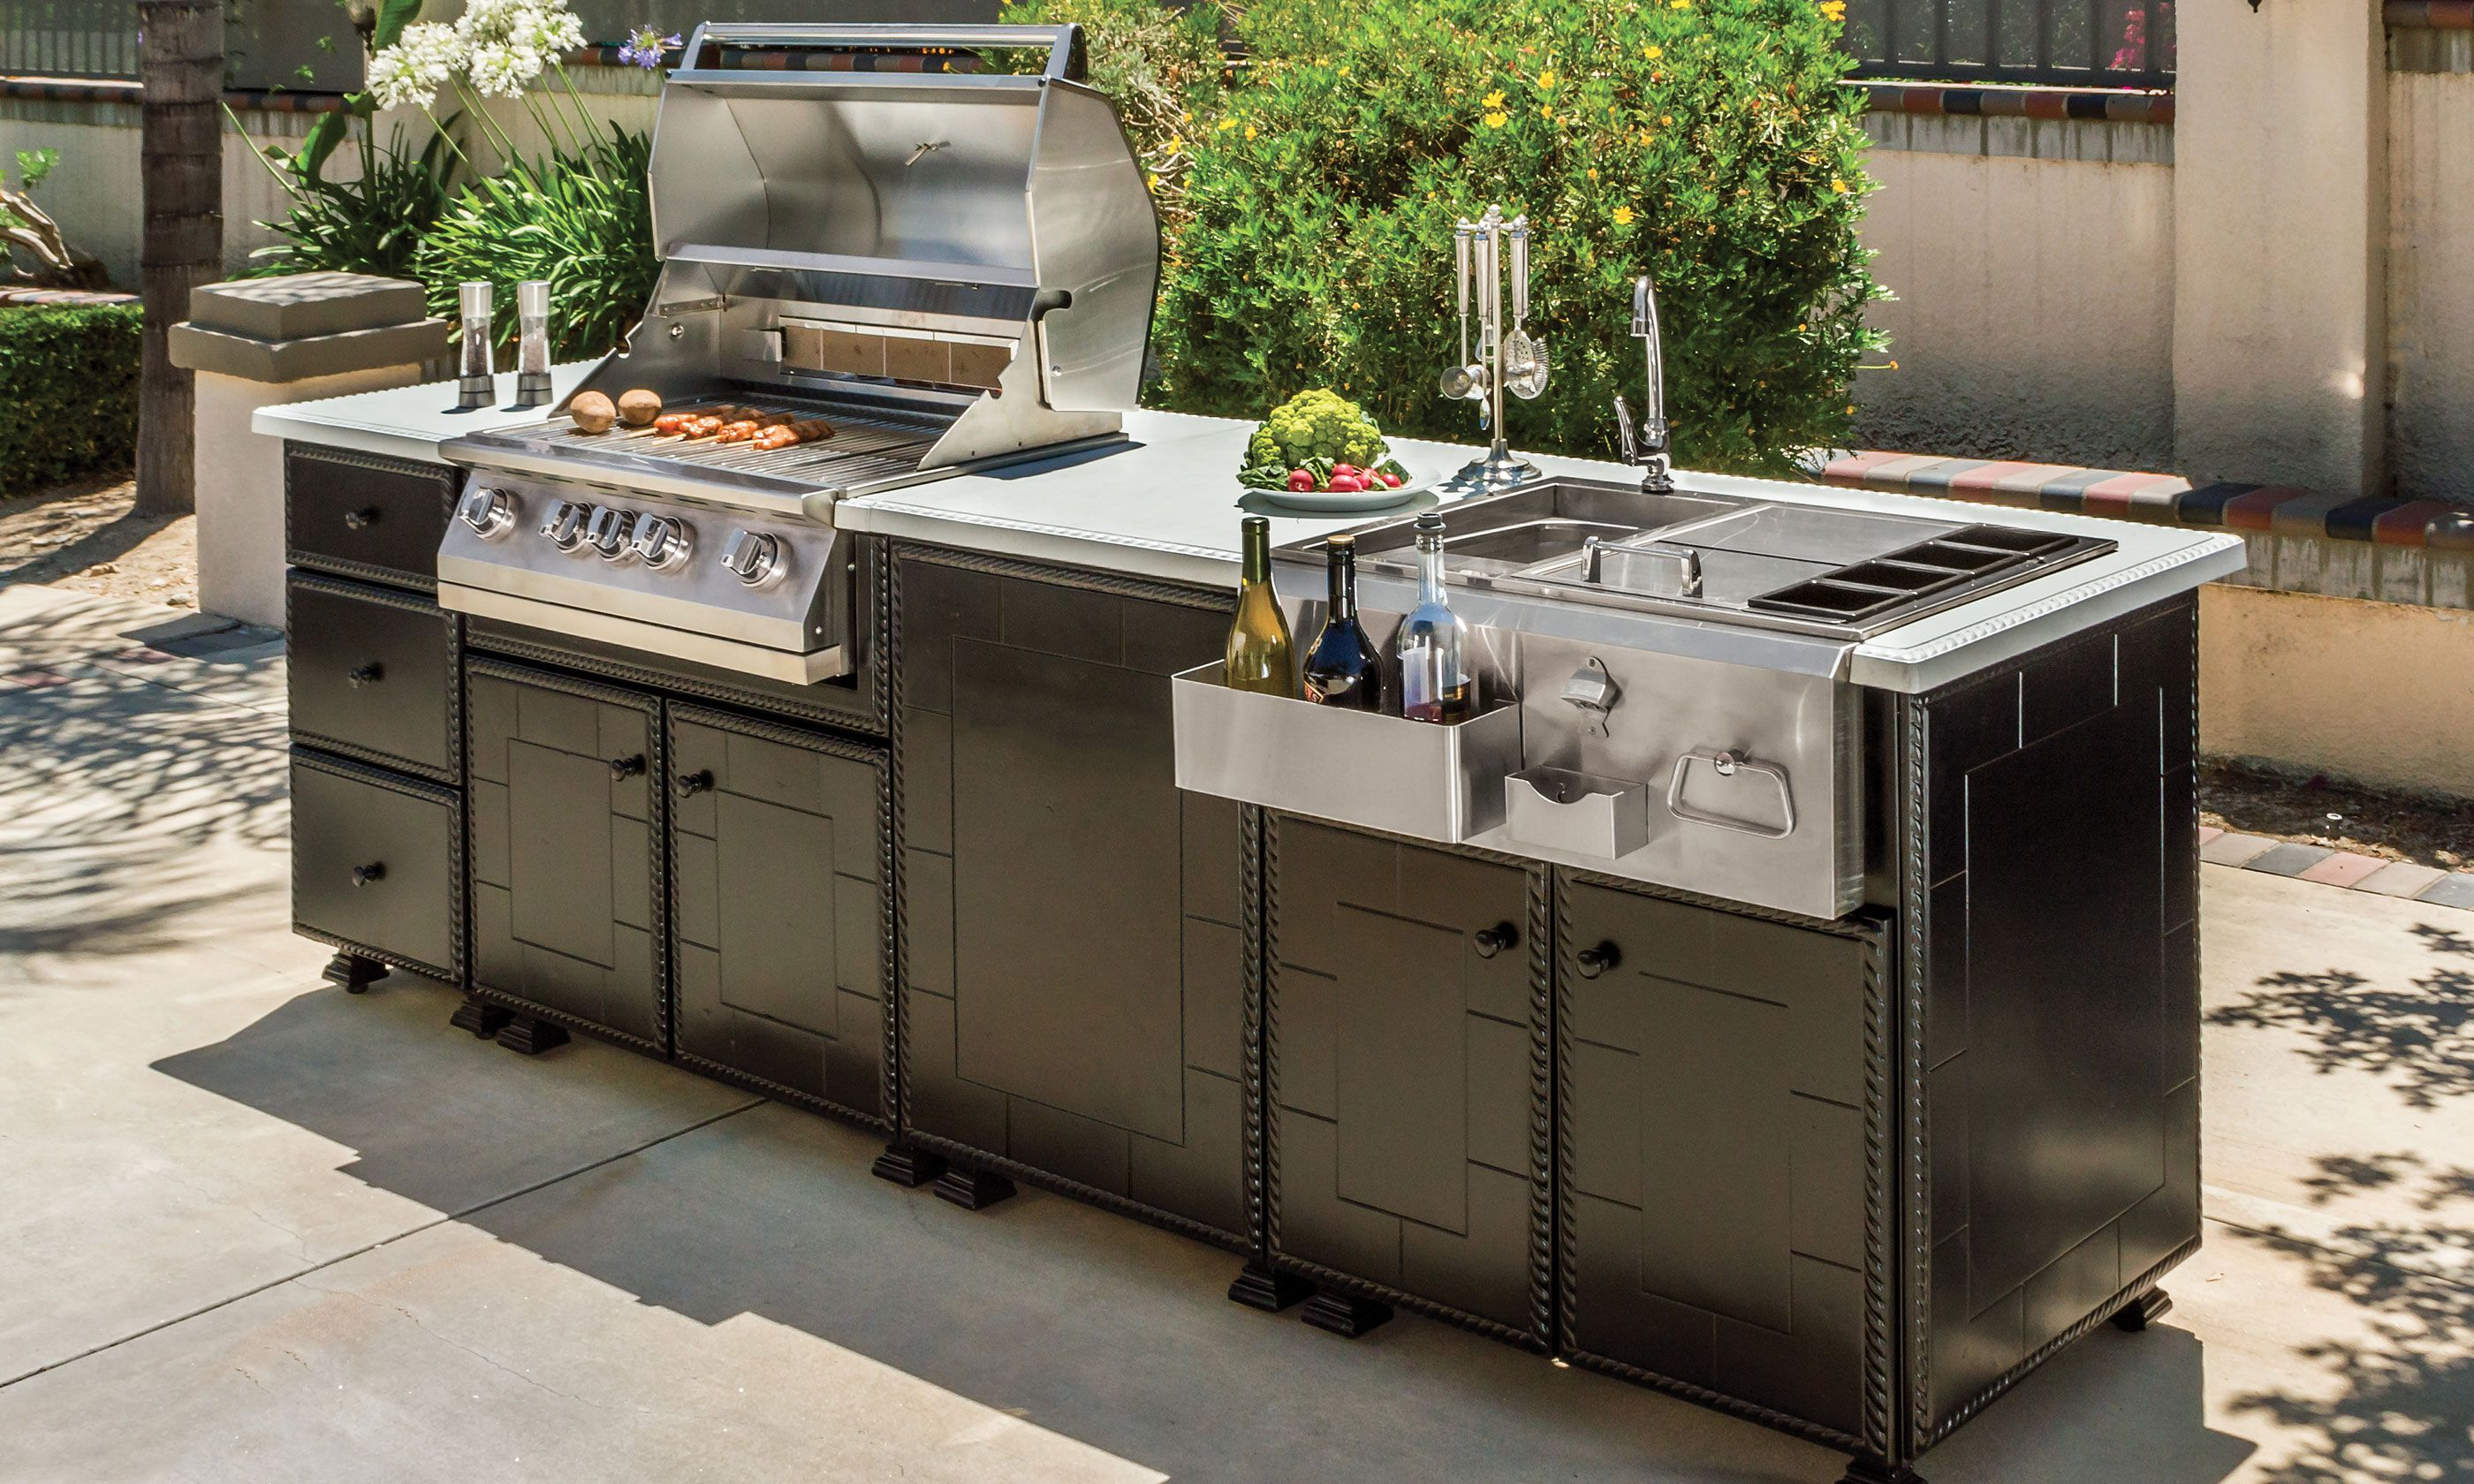 Outdoor Kitchens Kitchen Islands Grill Bar Center Island Gensun Casual Living In 2020 Outdoor Kitchen Kitchen Island Grill Kitchen